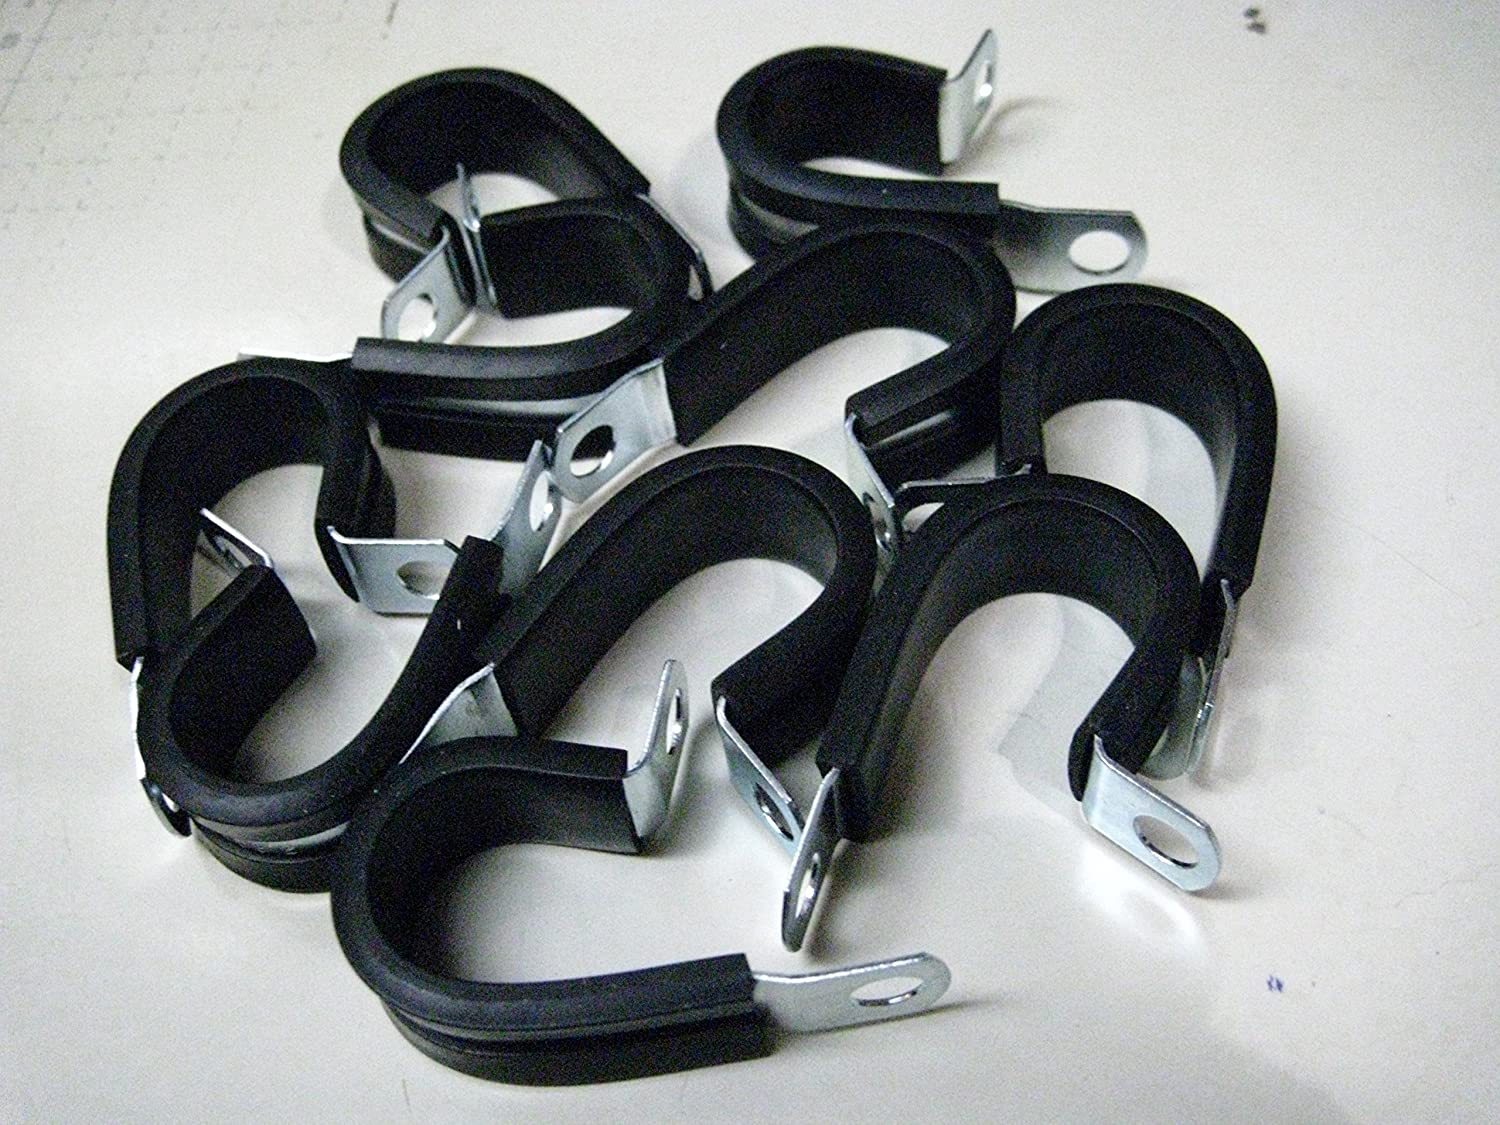 Made In USA Vulcan 1//2 Adel Steel Wire /& Tubing Management Loom Clamps 10 pk